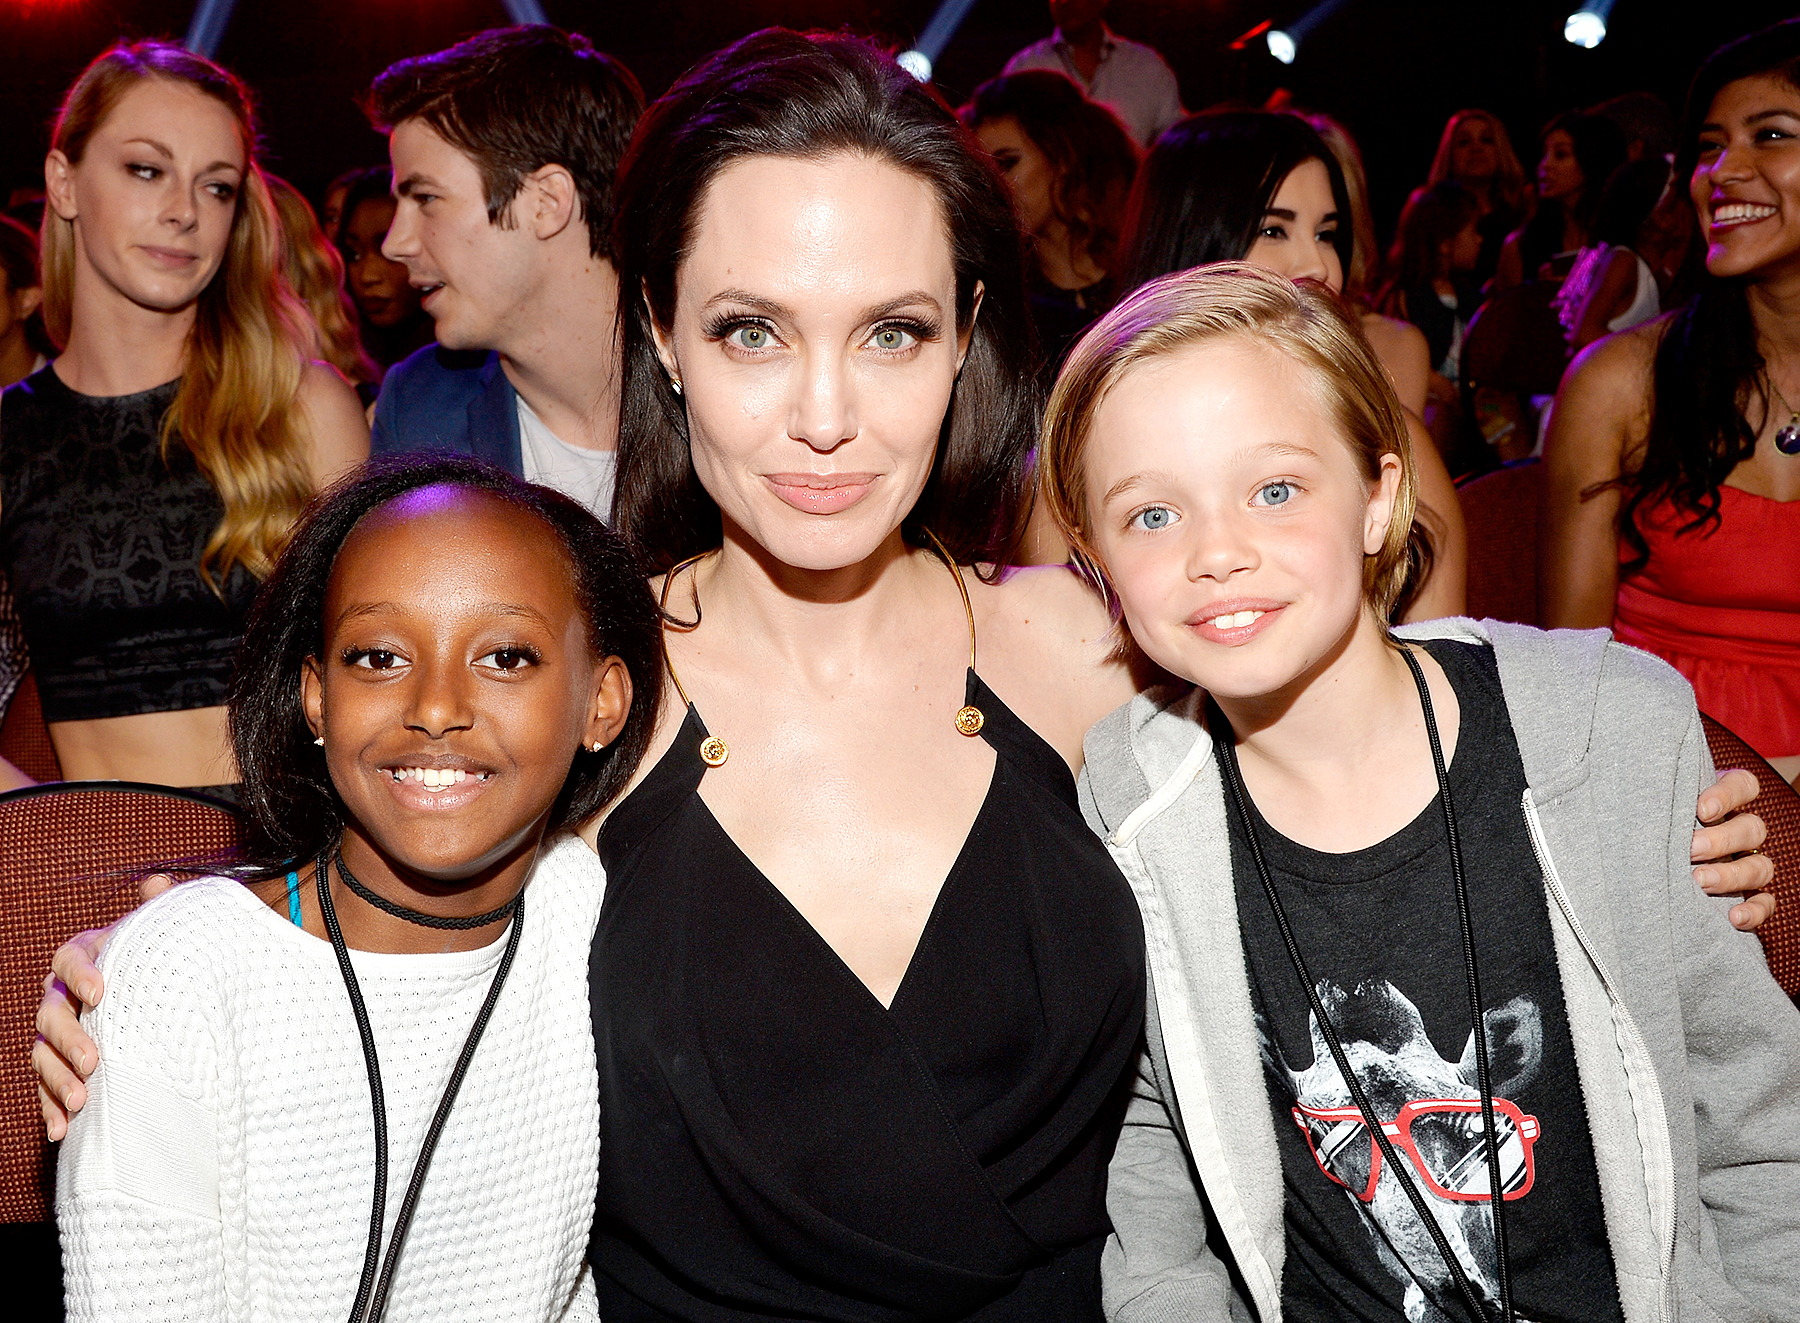 angelina-jolie-shiloh-jolie-pitt-broken-collarbone - Angelina Jolie (C) with Zahara Marley Jolie-Pitt (L) and Shiloh Nouvel Jolie-Pitt (R) in the audience during Nickelodeon's 28th Annual Kids' Choice Awards held at The Forum on March 28, 2015 in Inglewood, California.